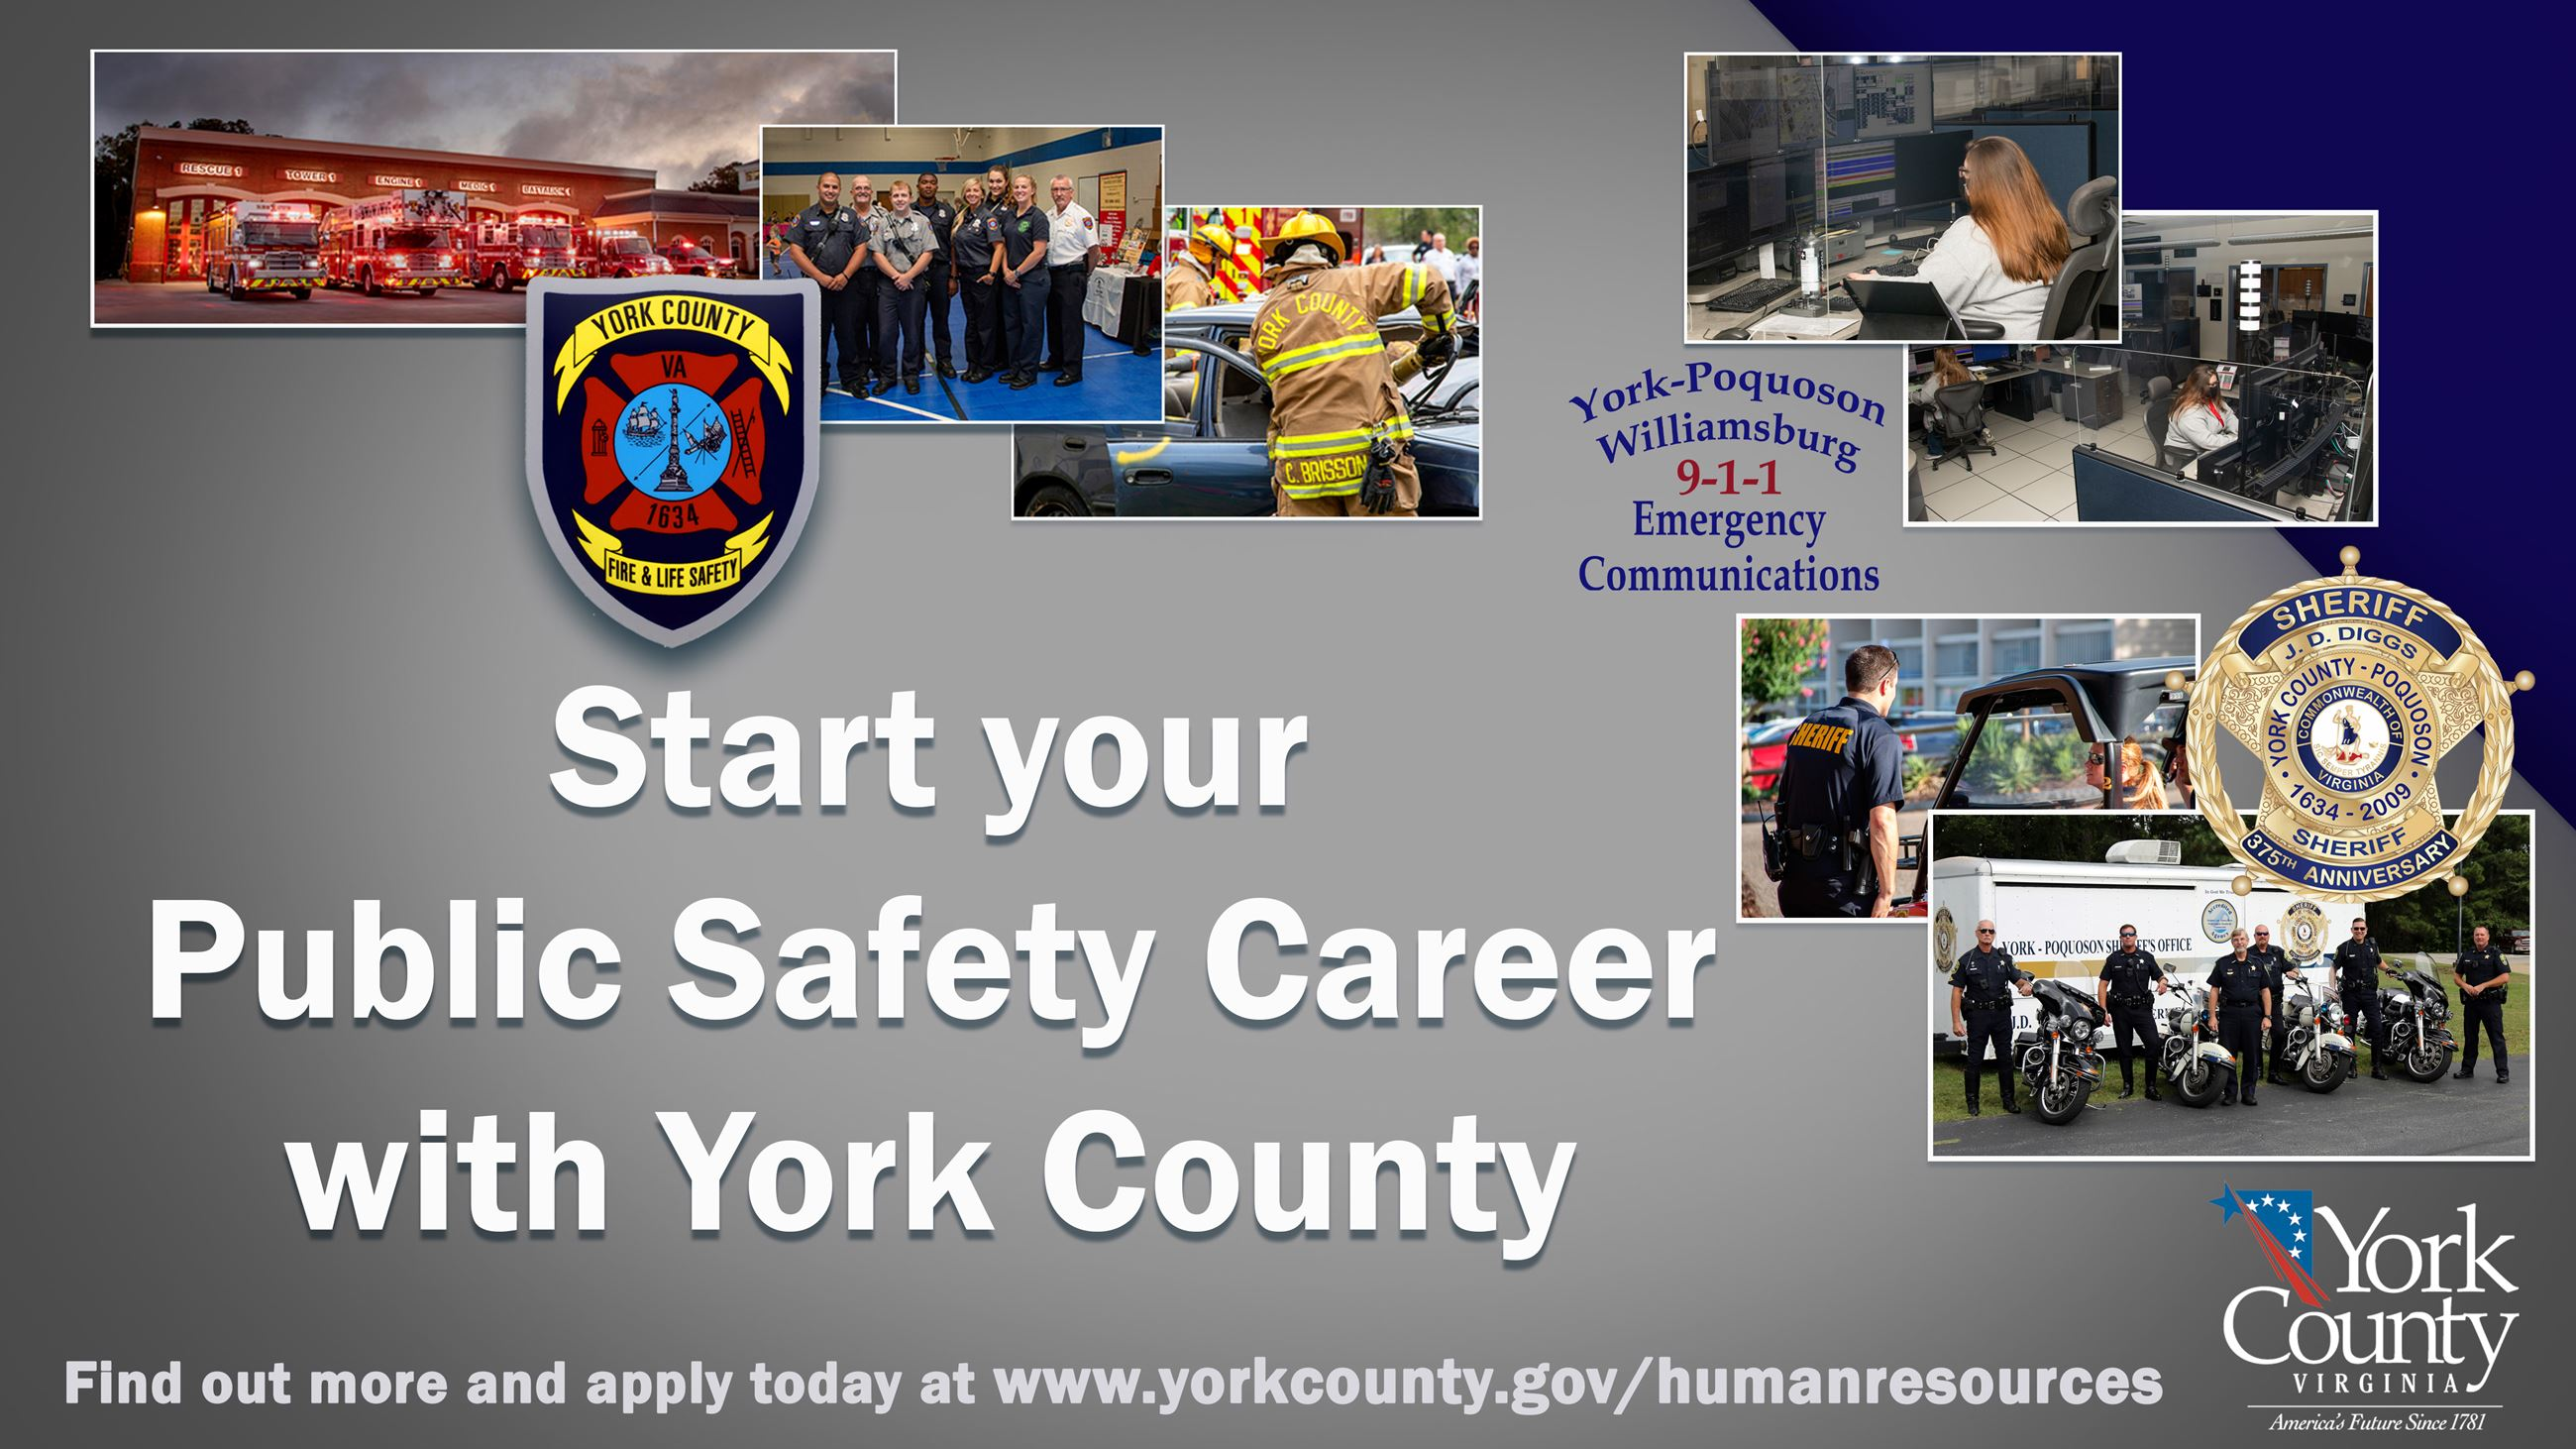 Public Safety Recruitment